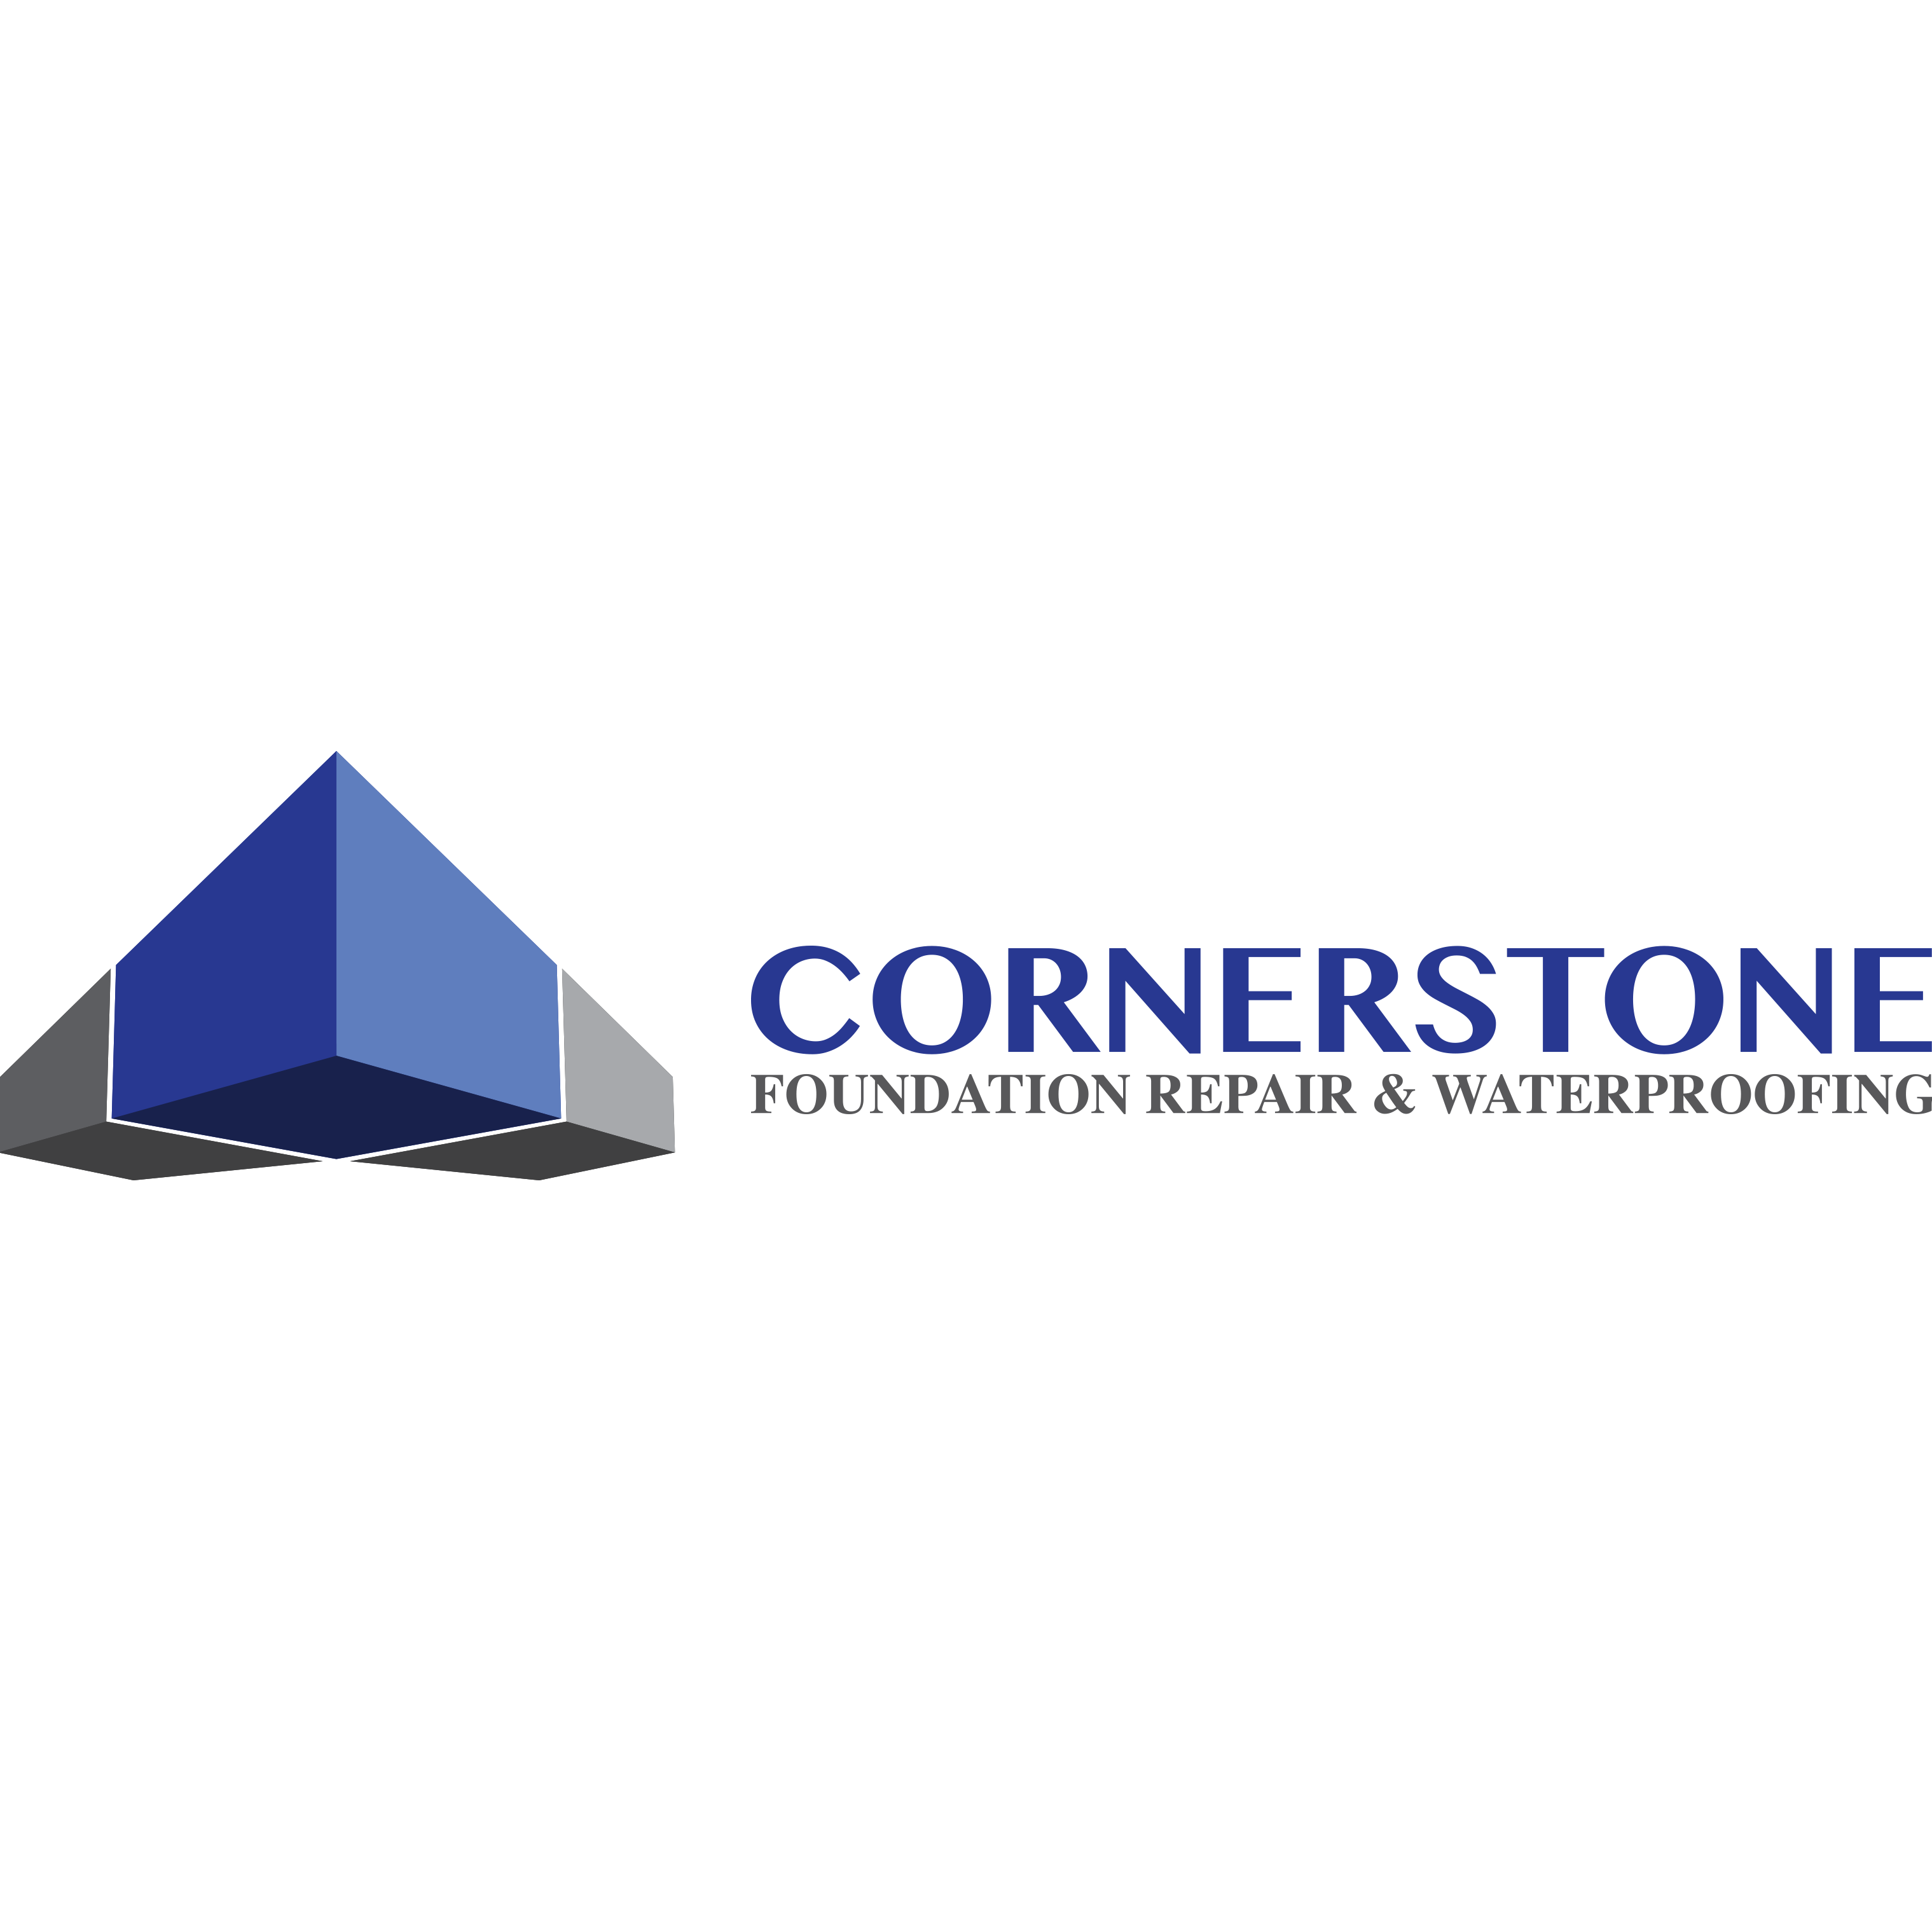 About Cornerstone Business Solutions, LLC